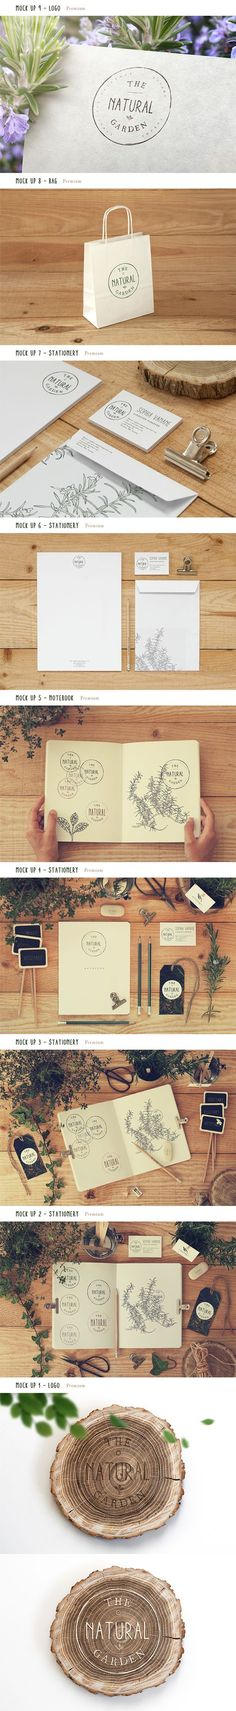 Collection 14 - Free & Premium Mock Ups by Qeaql, via Behance